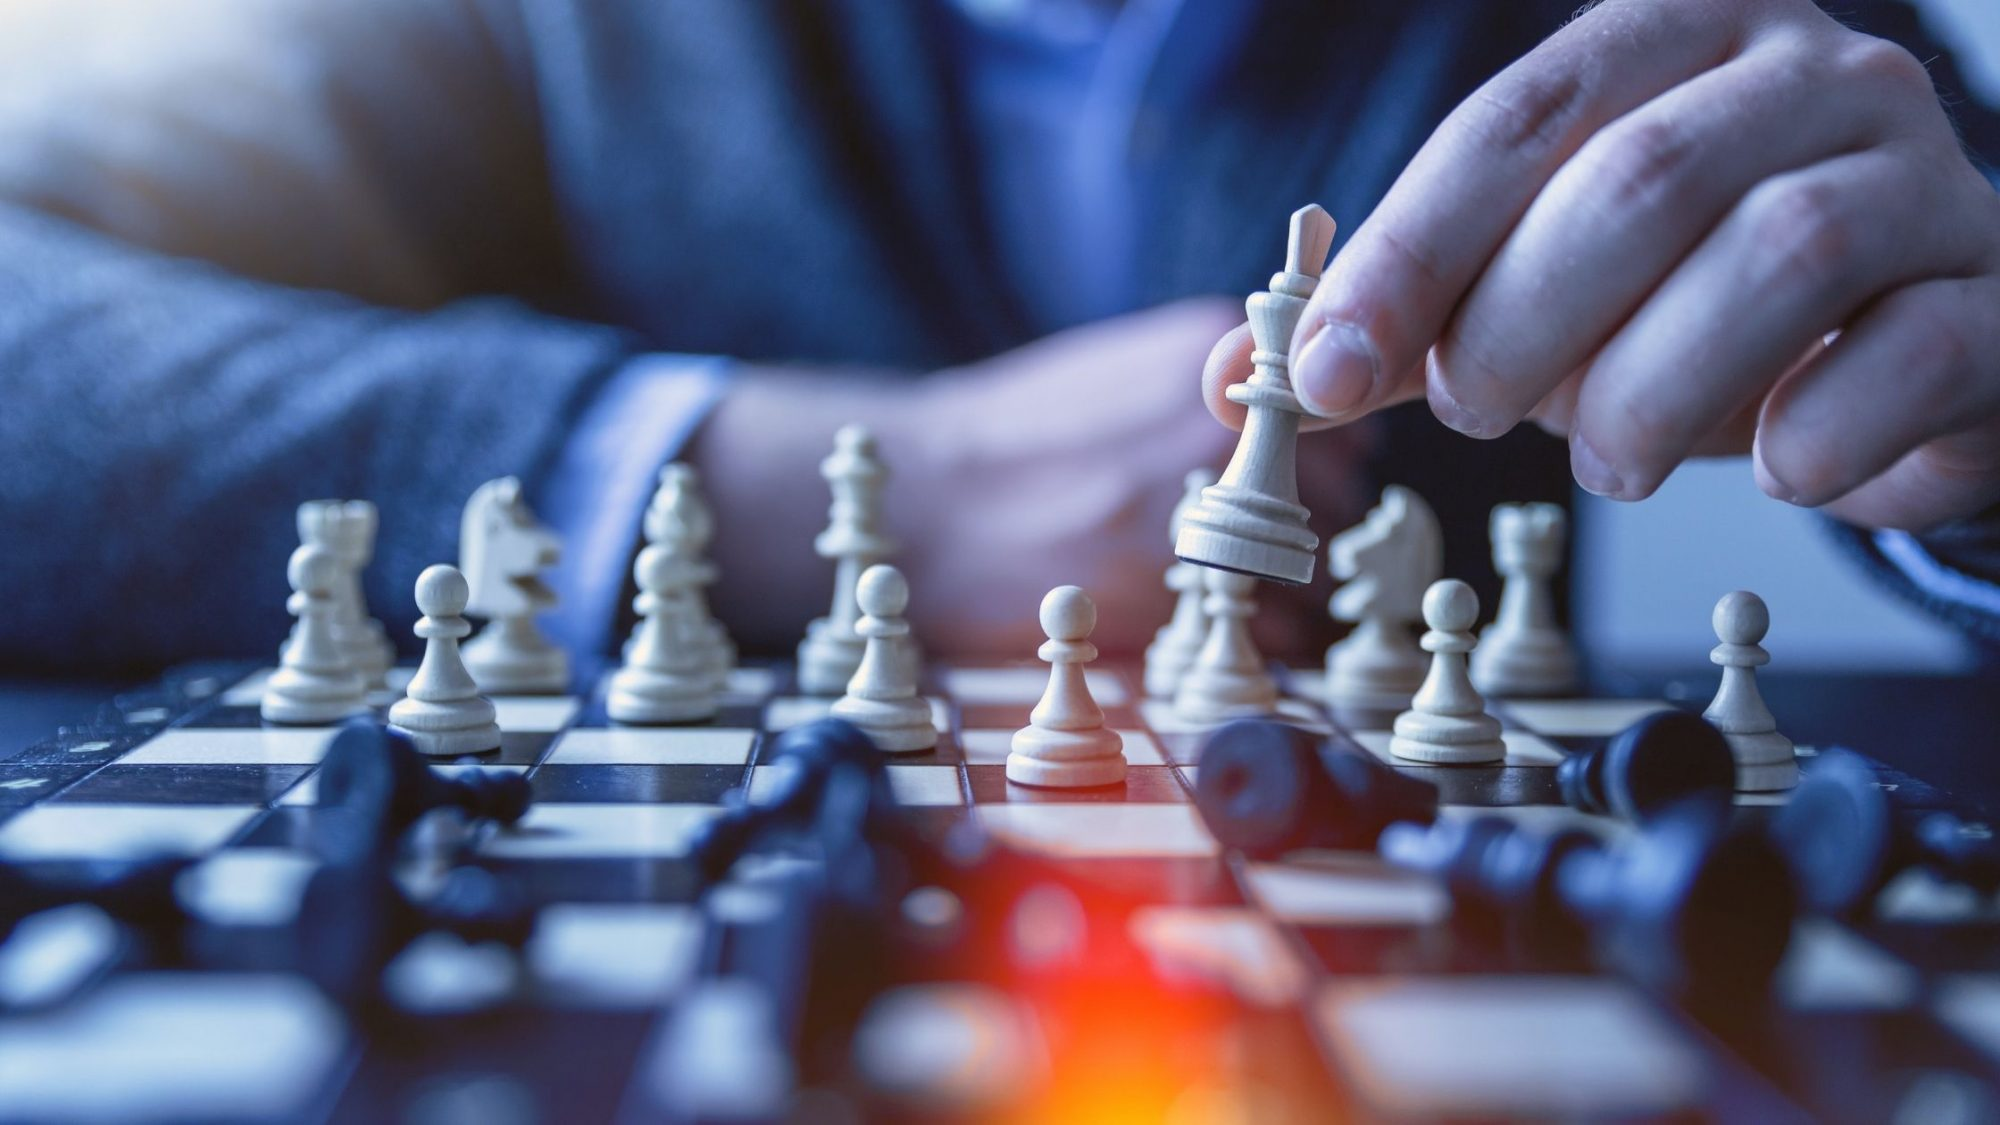 THE TOP 3 REASONS STRATEGIC PLANNING FAILS